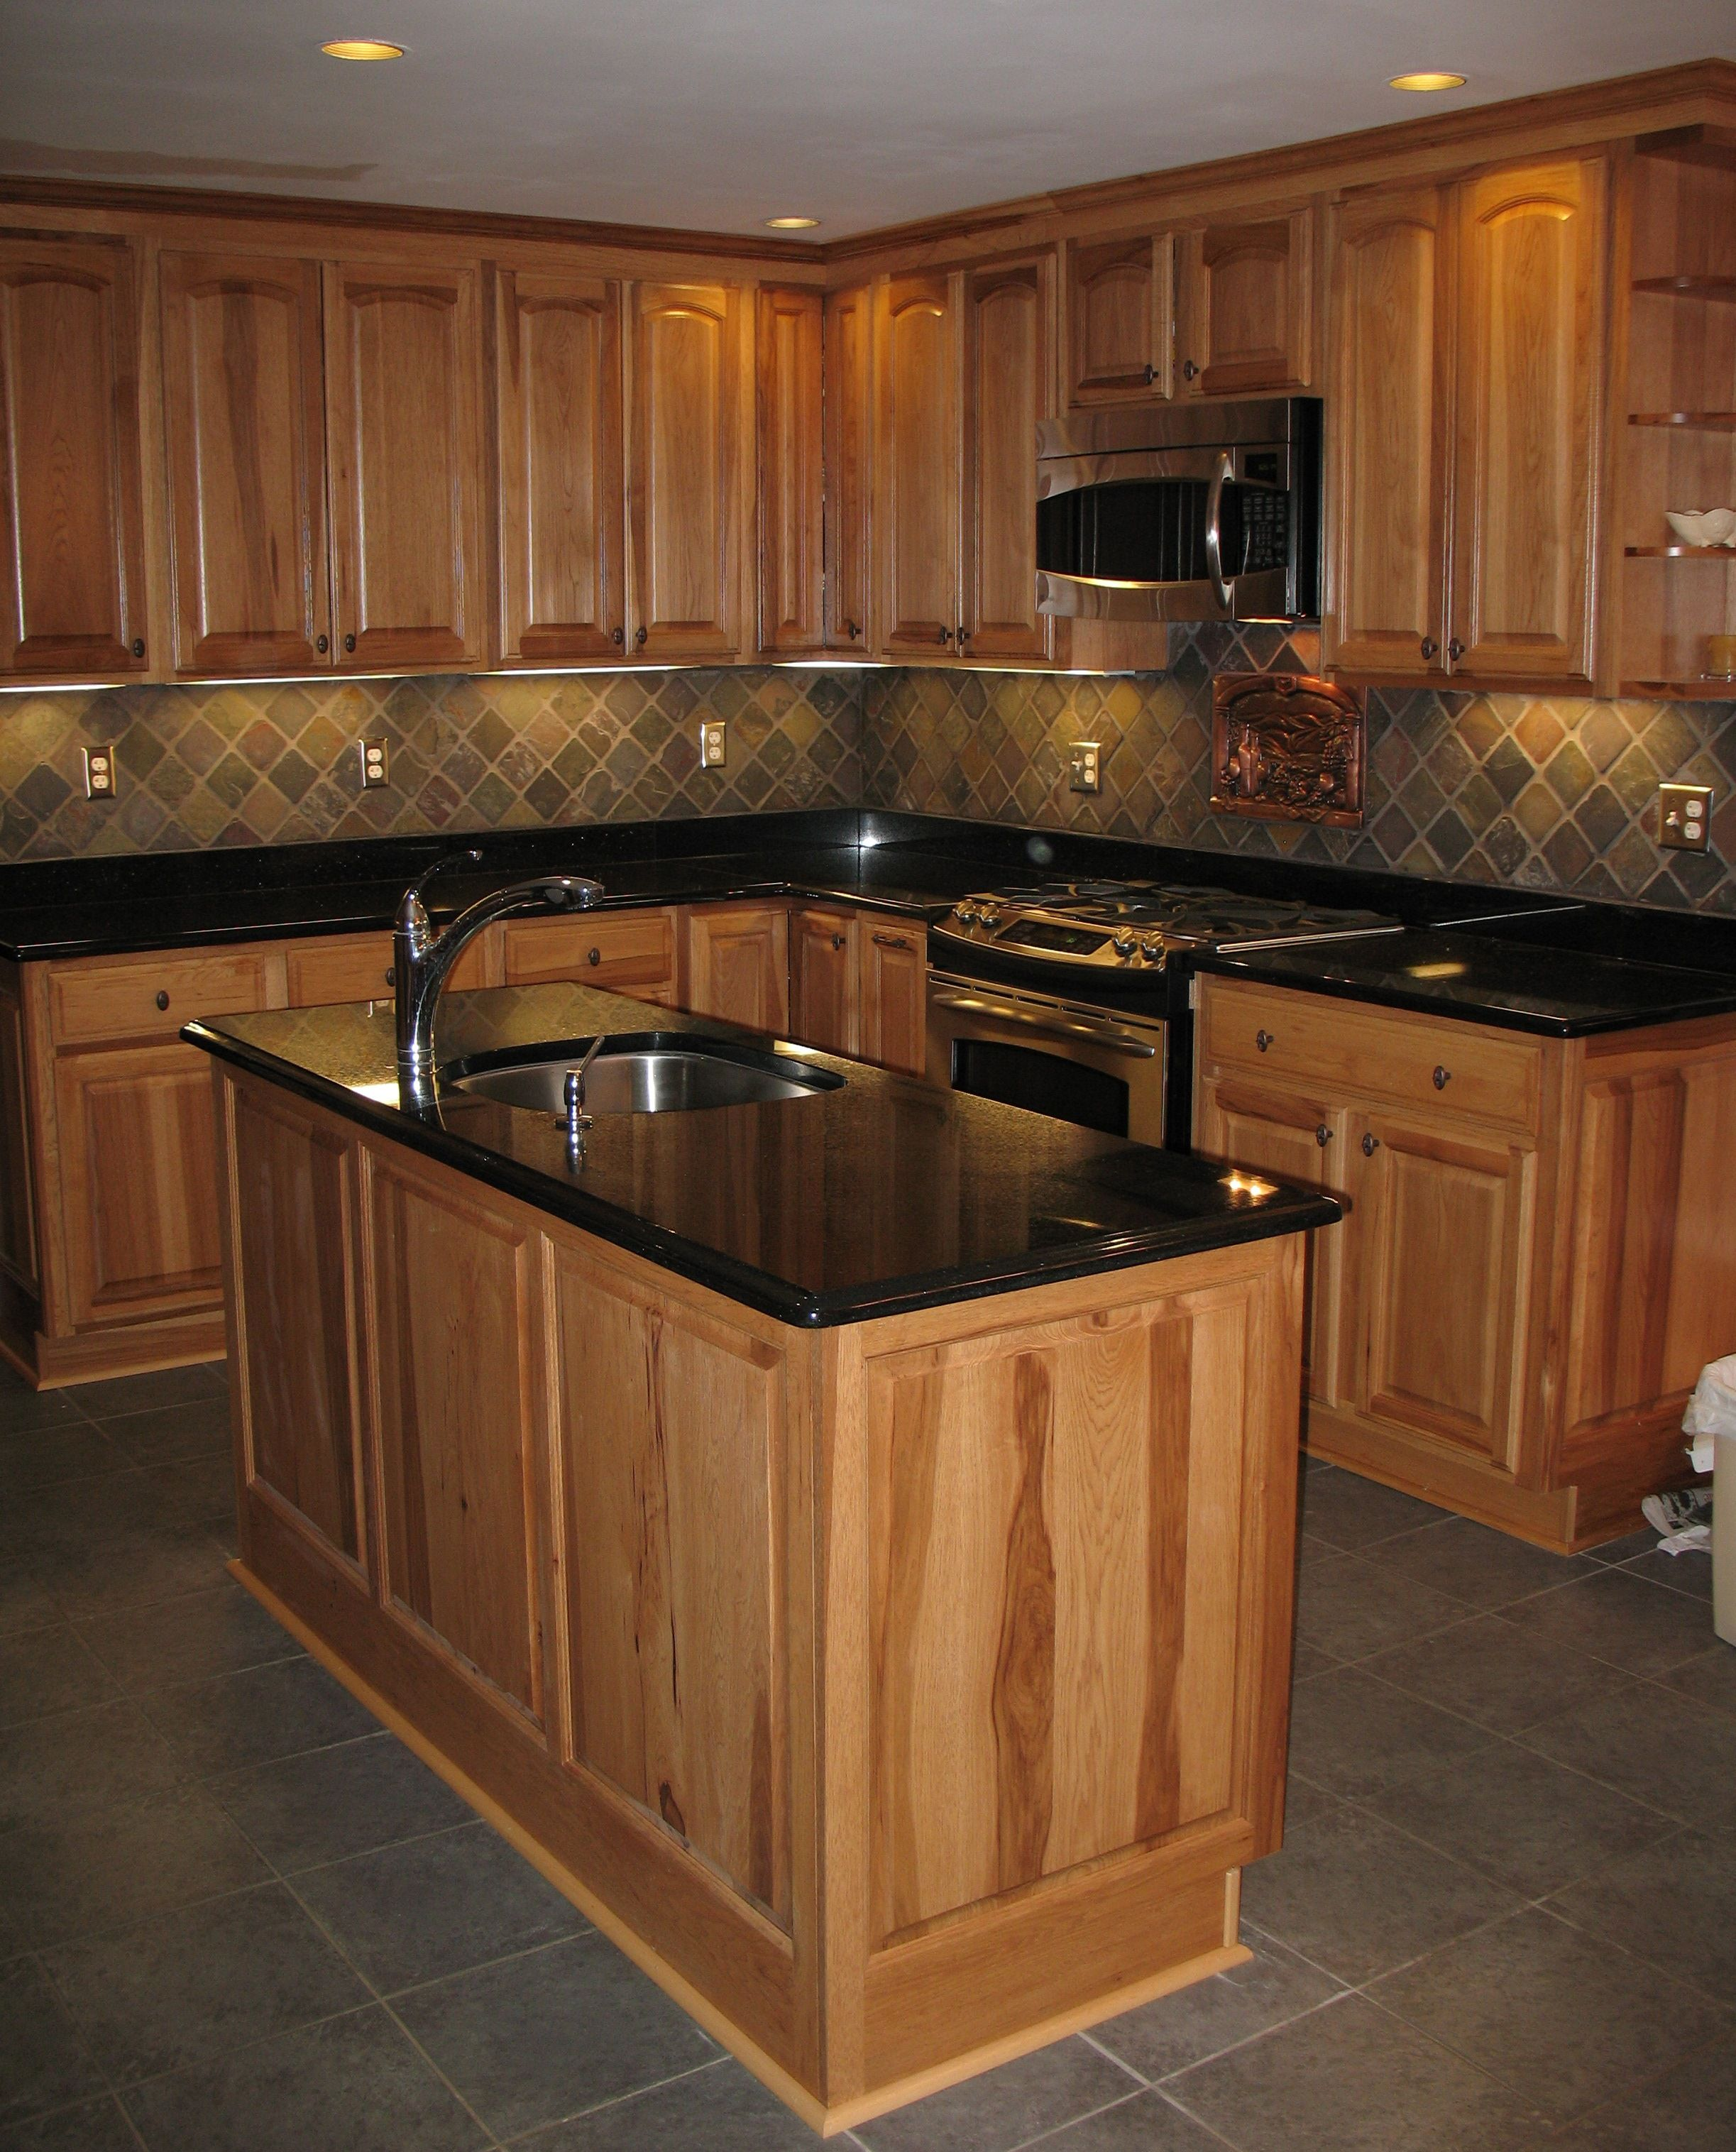 Kitchen Backsplash Granite: My Husband And I Installed This Slate Backsplash